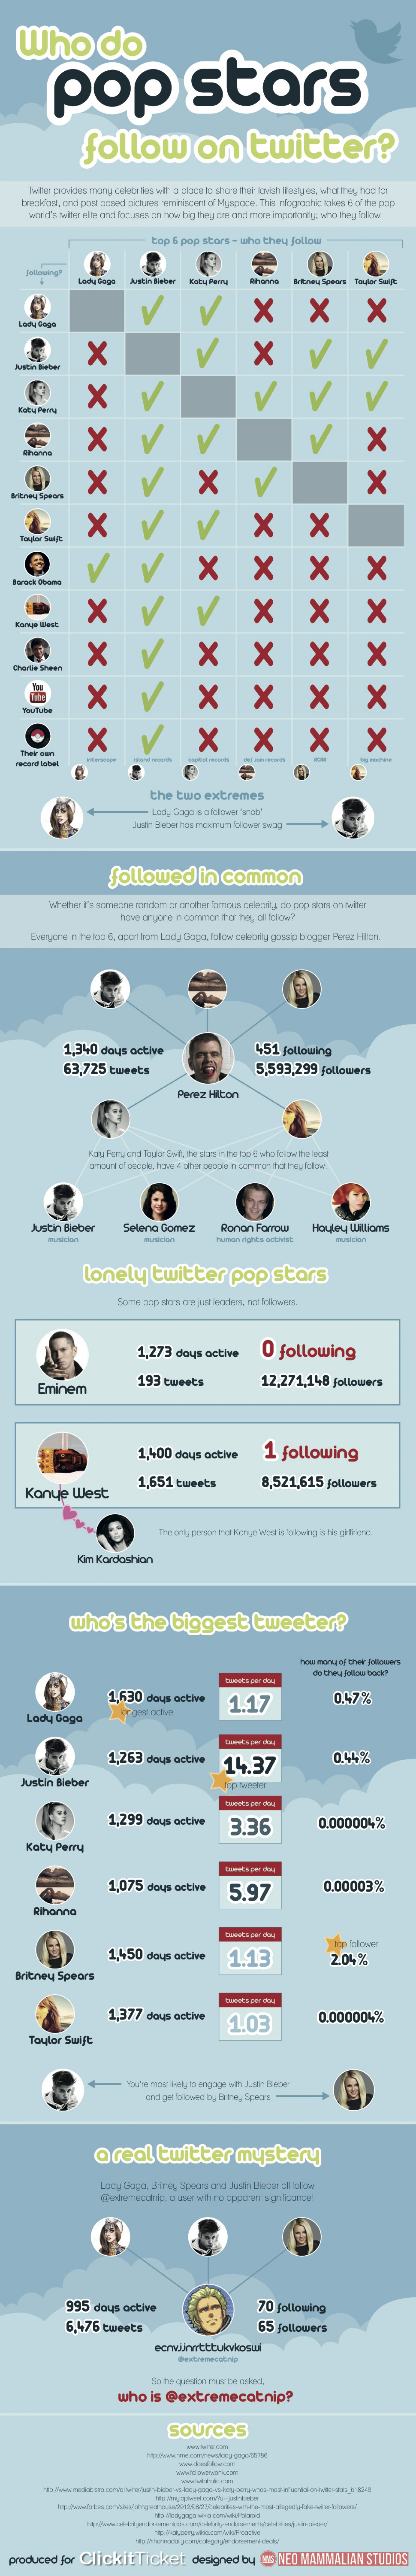 Who Do Pop Stars Follow On Twitter Infographic